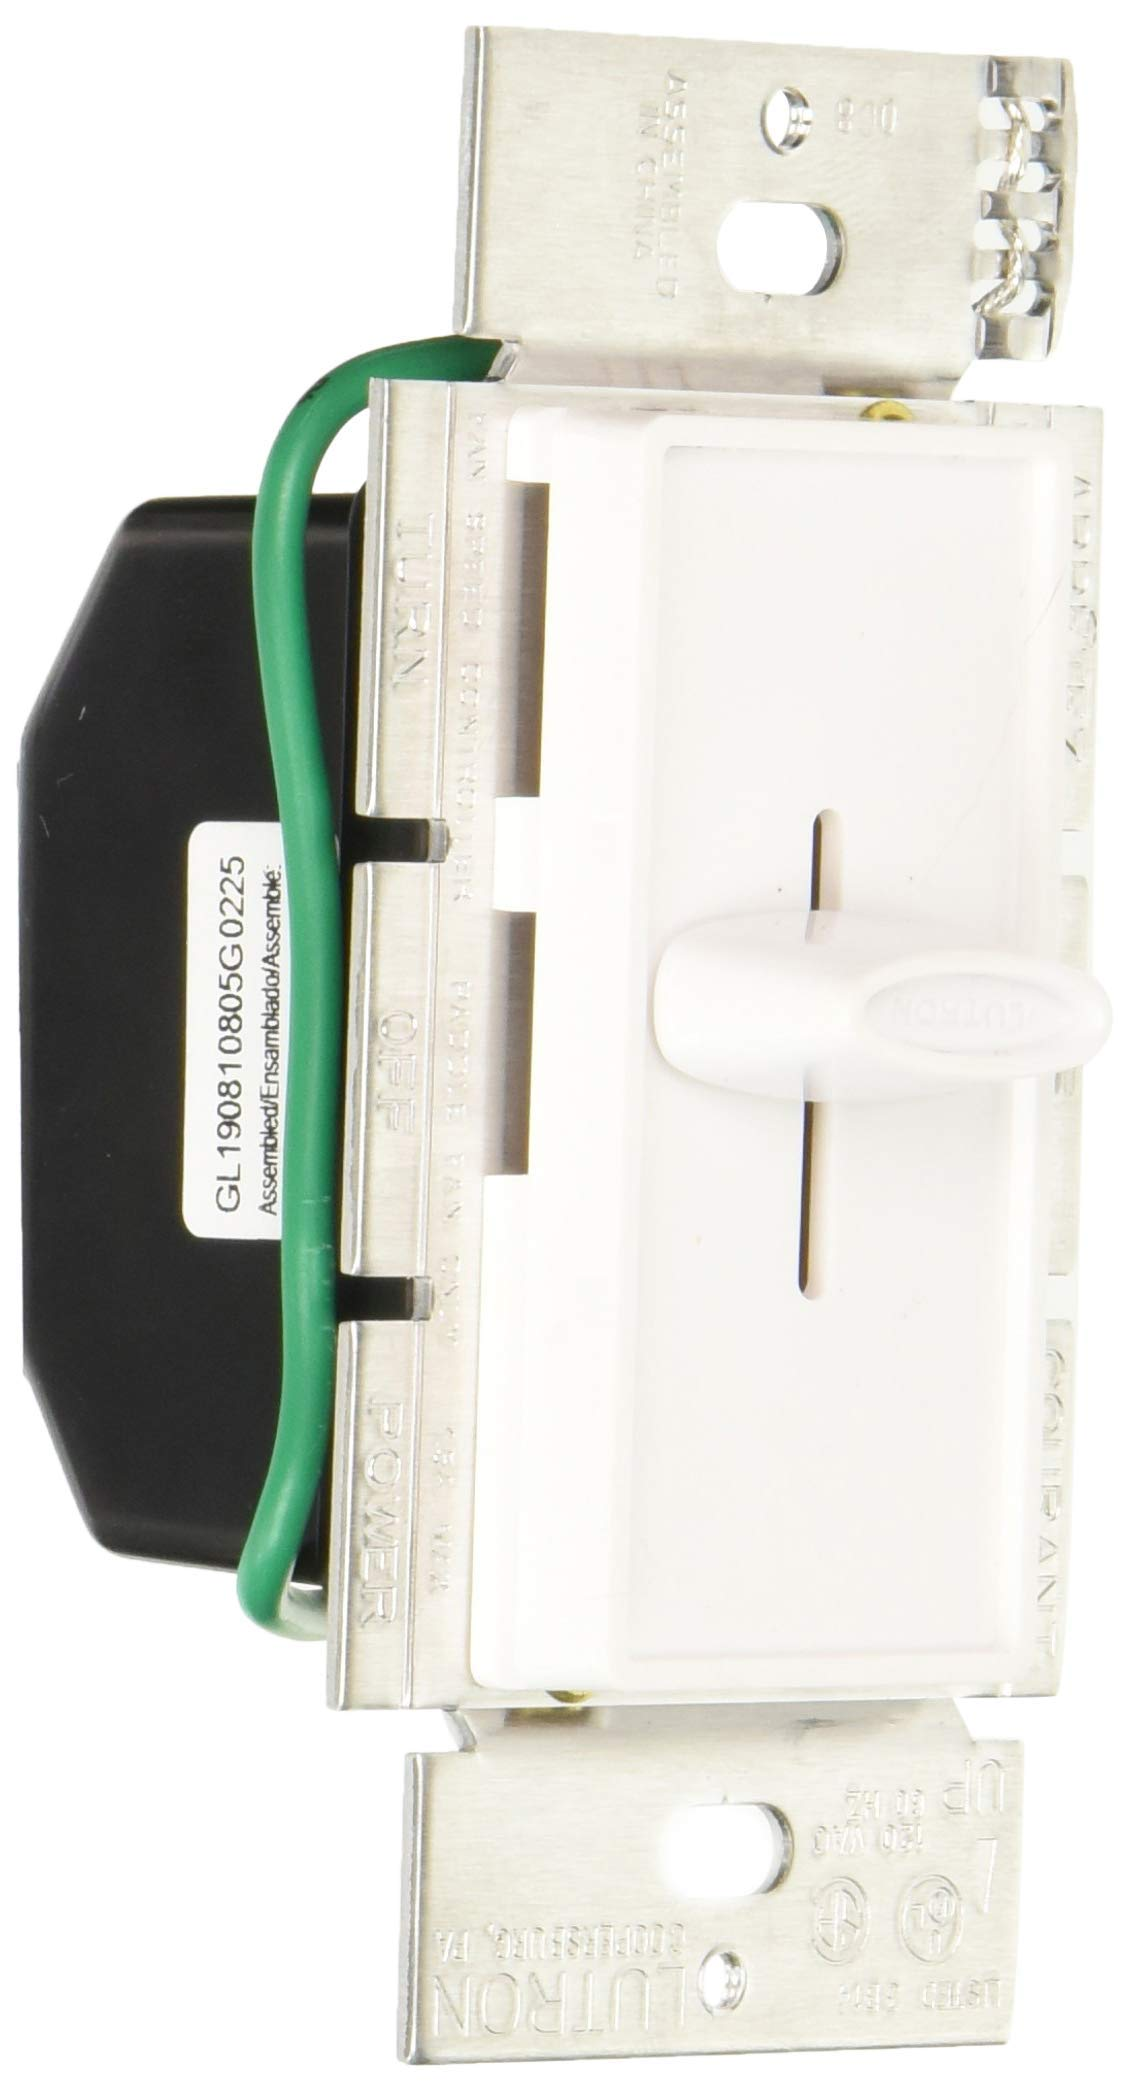 Lutron SFSQ-FH-WH Electronics Slide-To-Off Fan Speed Control, White (Renewed)